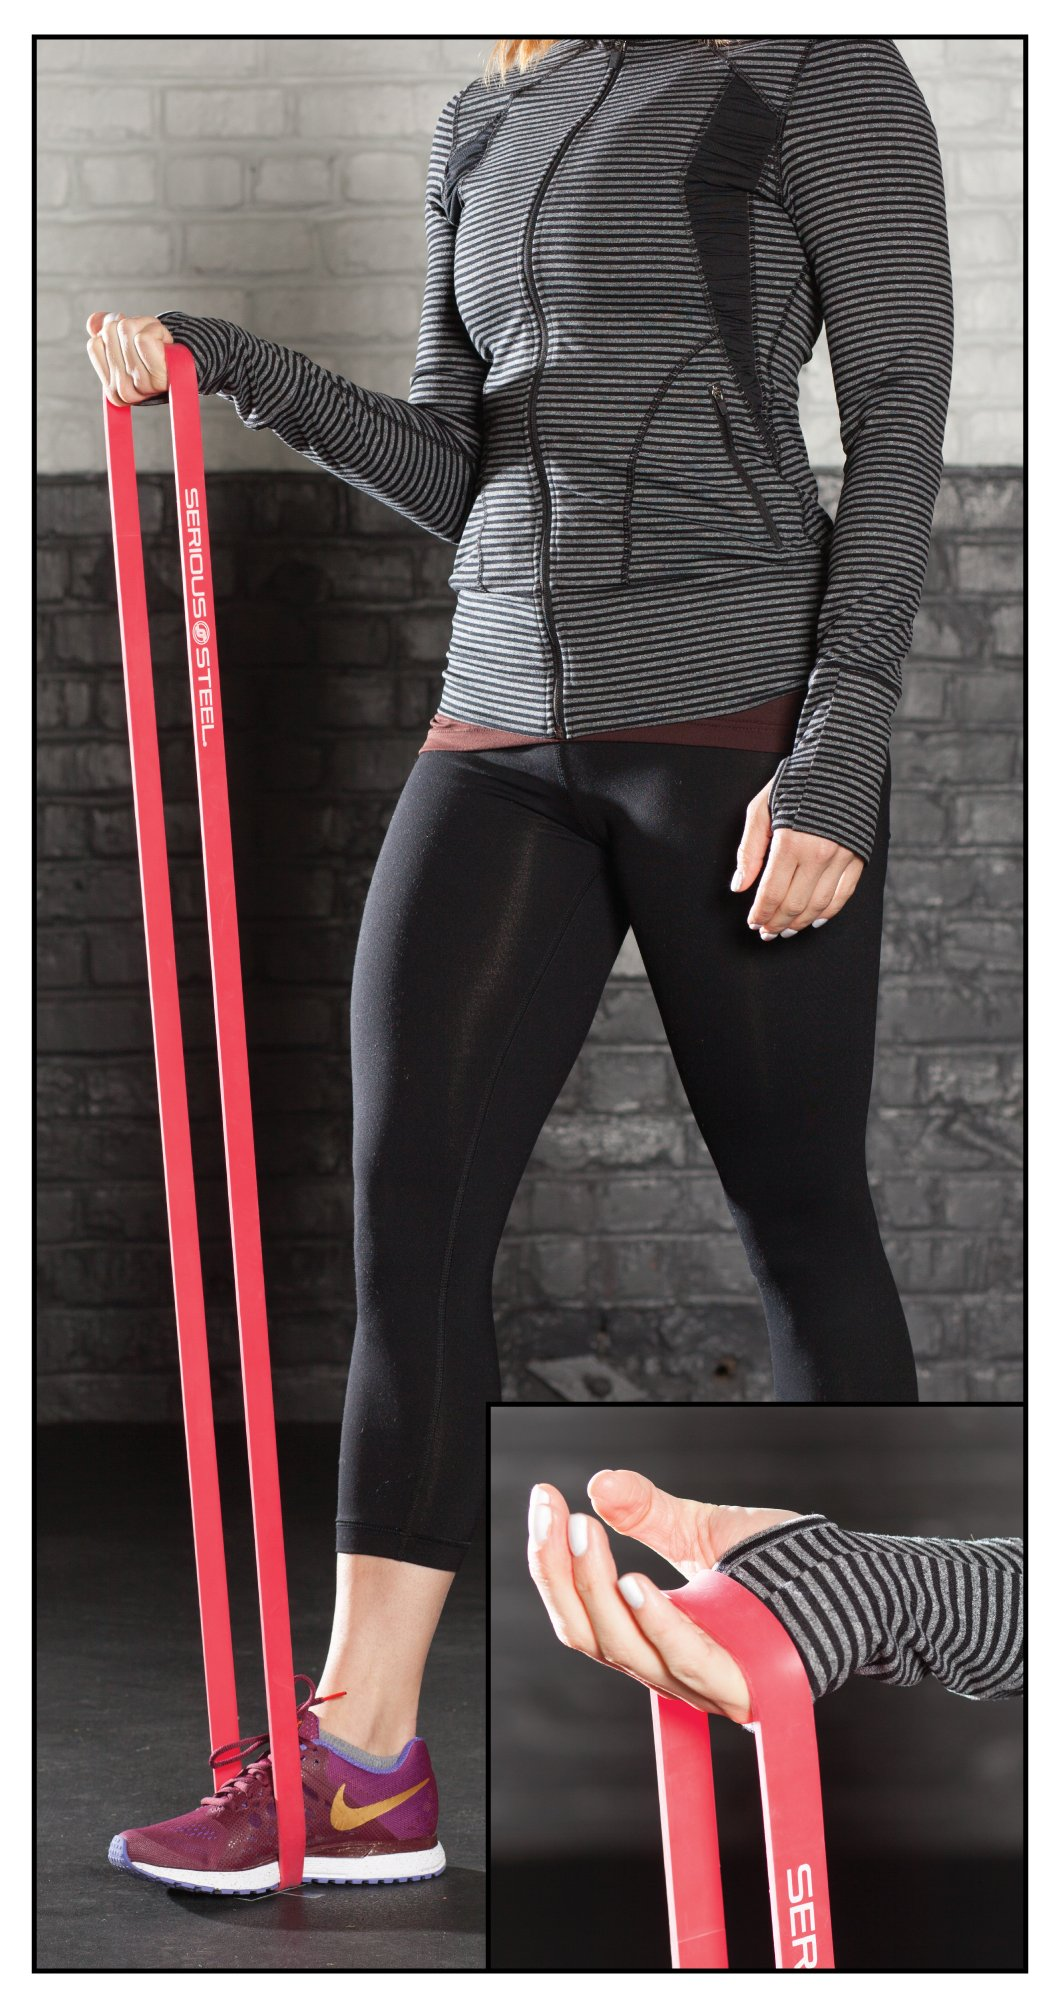 Serious Steel Fitness Beginner Assisted Pull-up &Crossfit Resistance Band Package#2, 3 Band Set (10-80 lbs) Free Pull-up and Band Starter e-Guide by Serious Steel Fitness (Image #6)